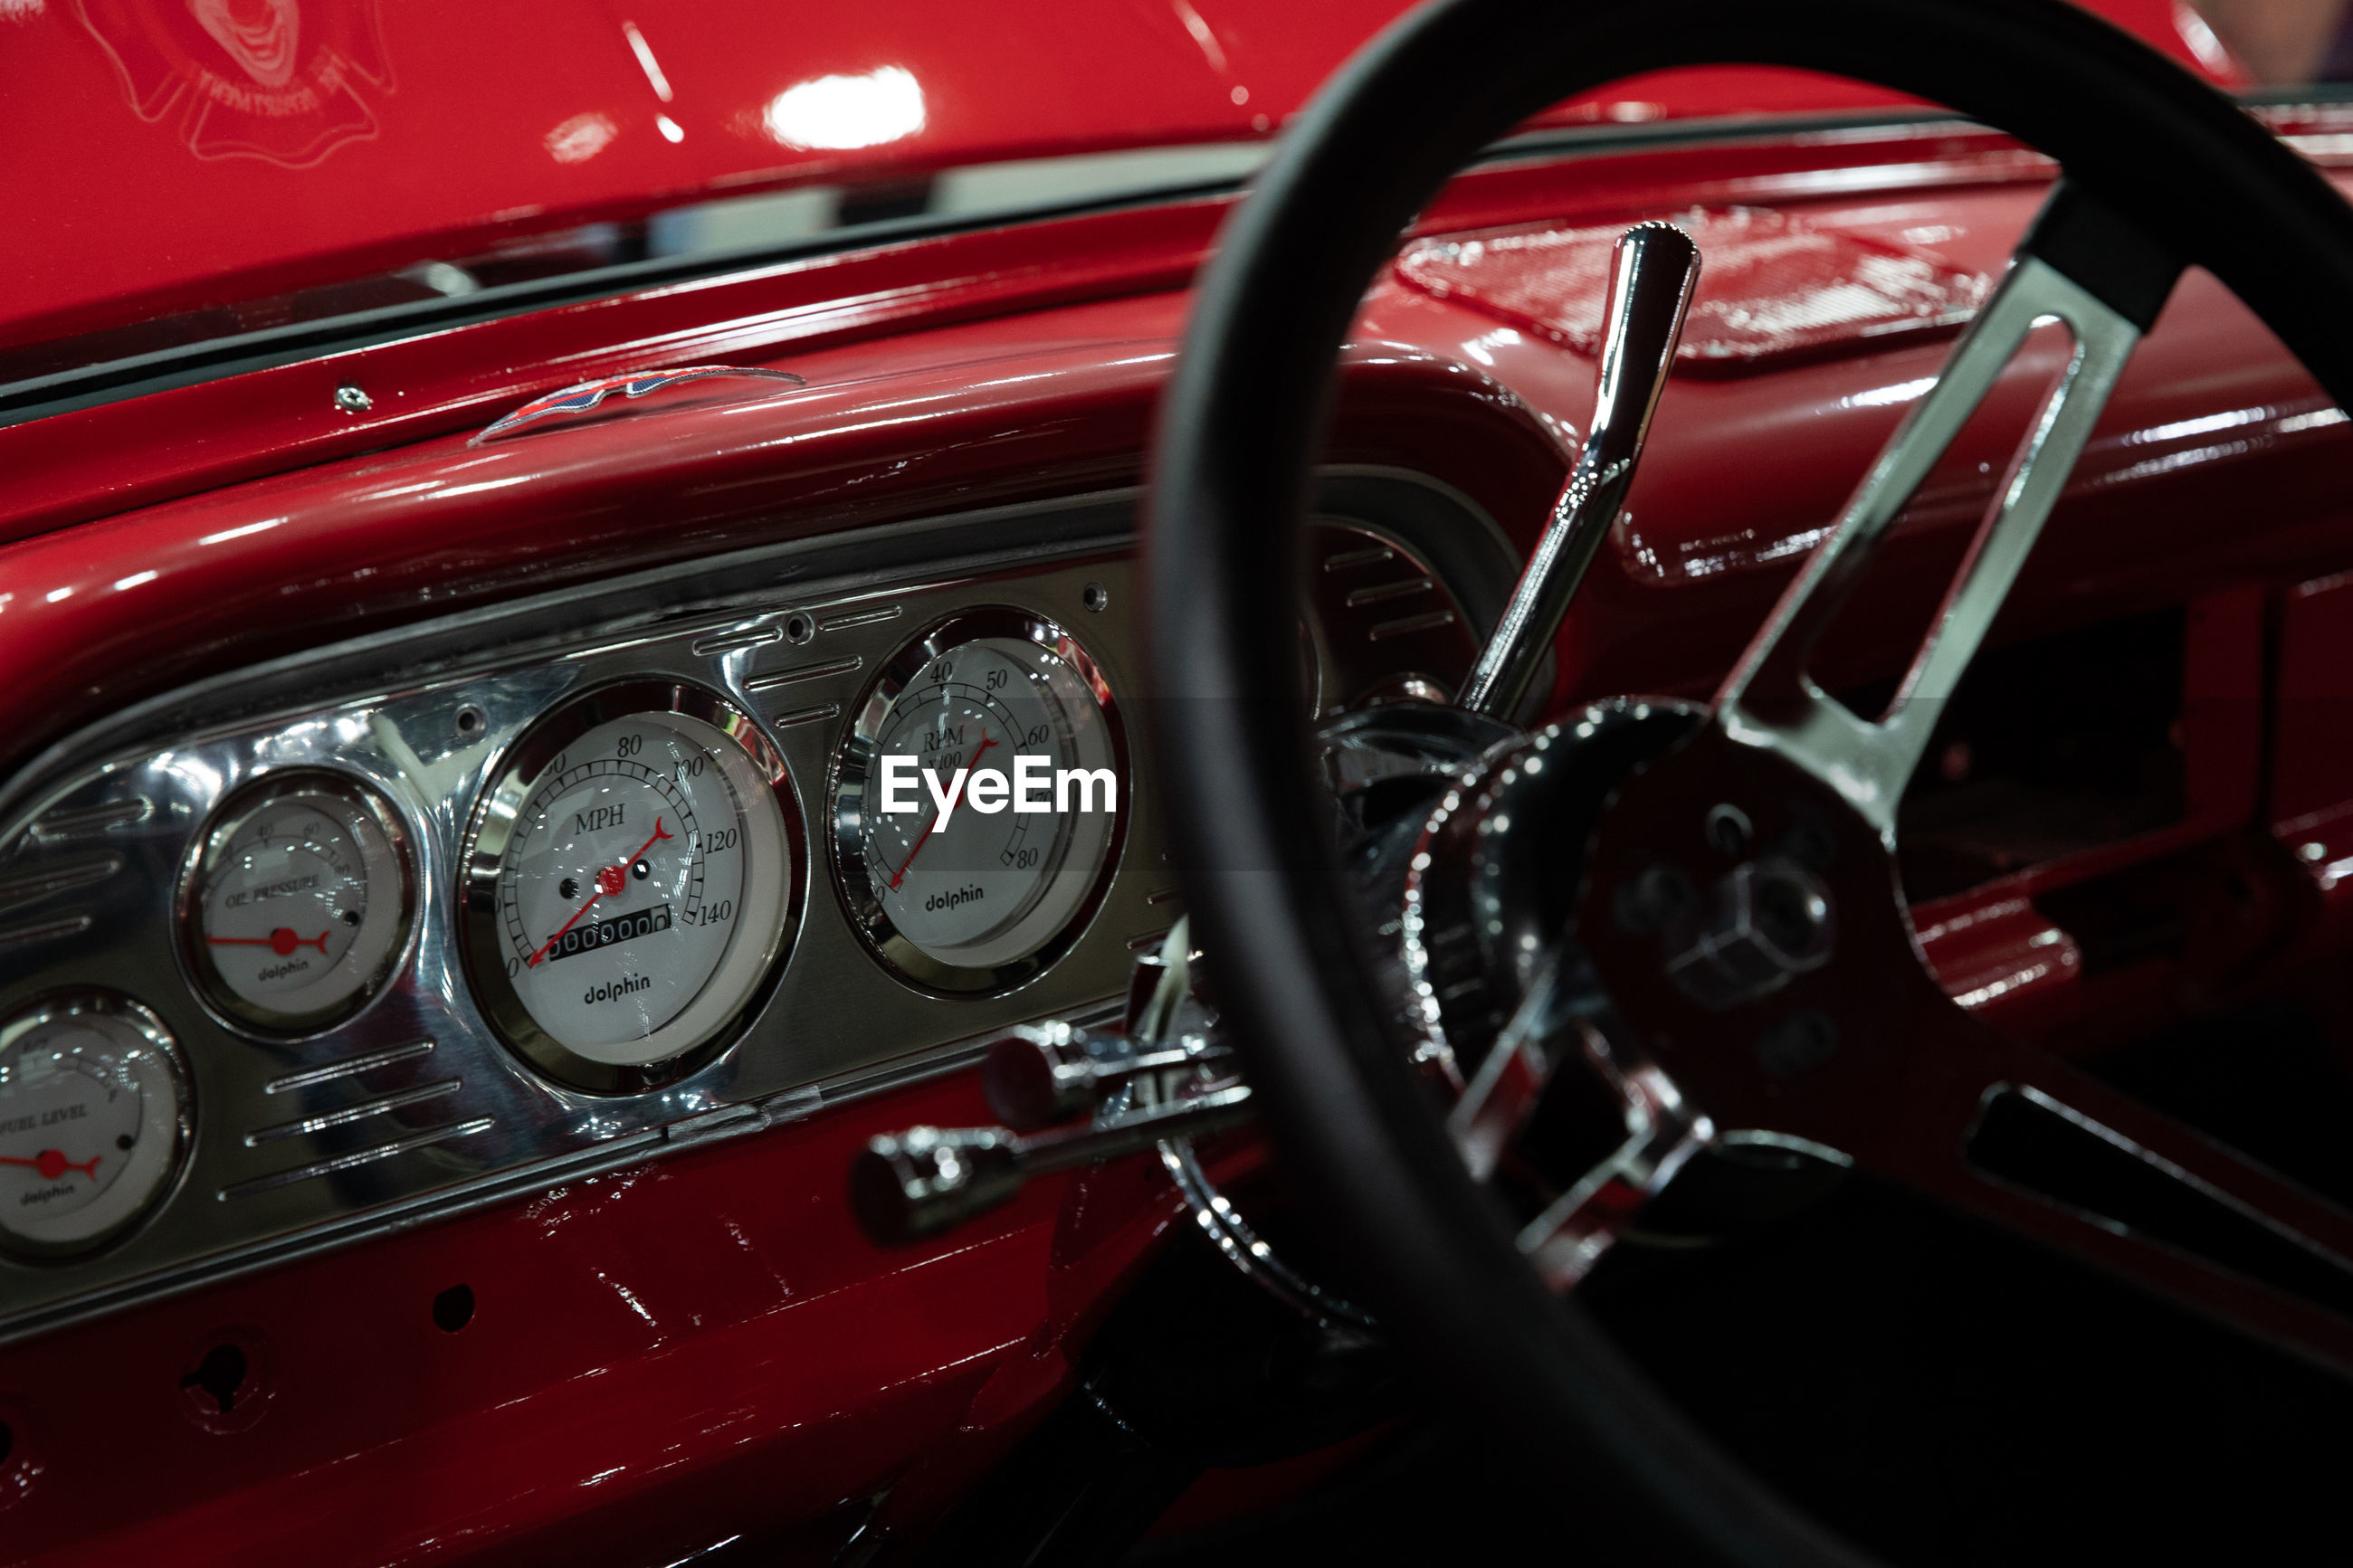 CLOSE-UP OF VINTAGE CAR WITH CAMERA IN BACKGROUND